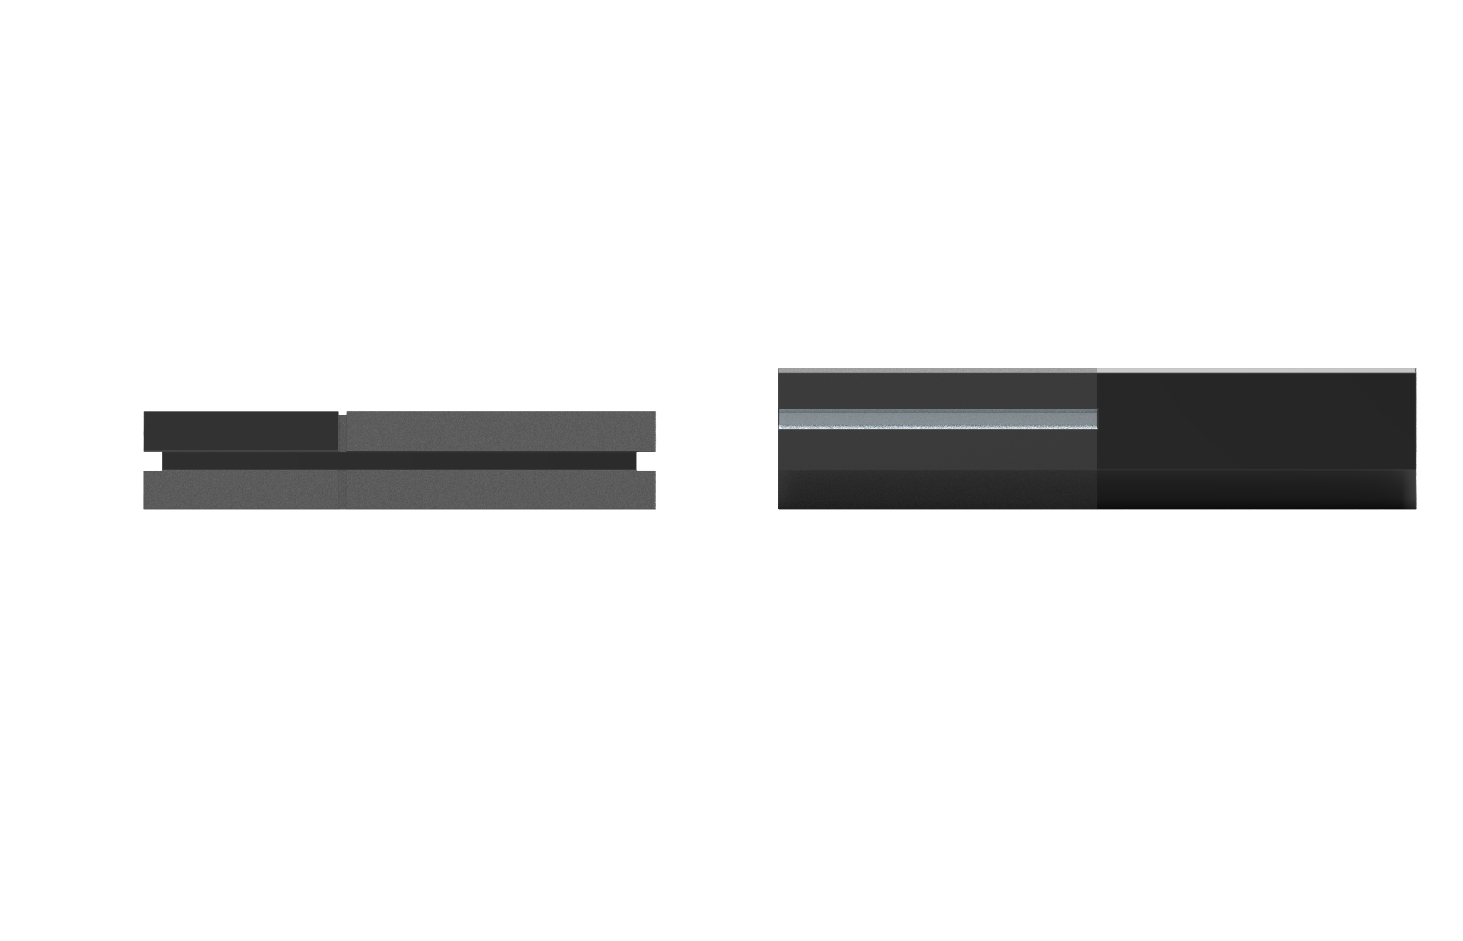 Xbox One Vs Ps4 Size